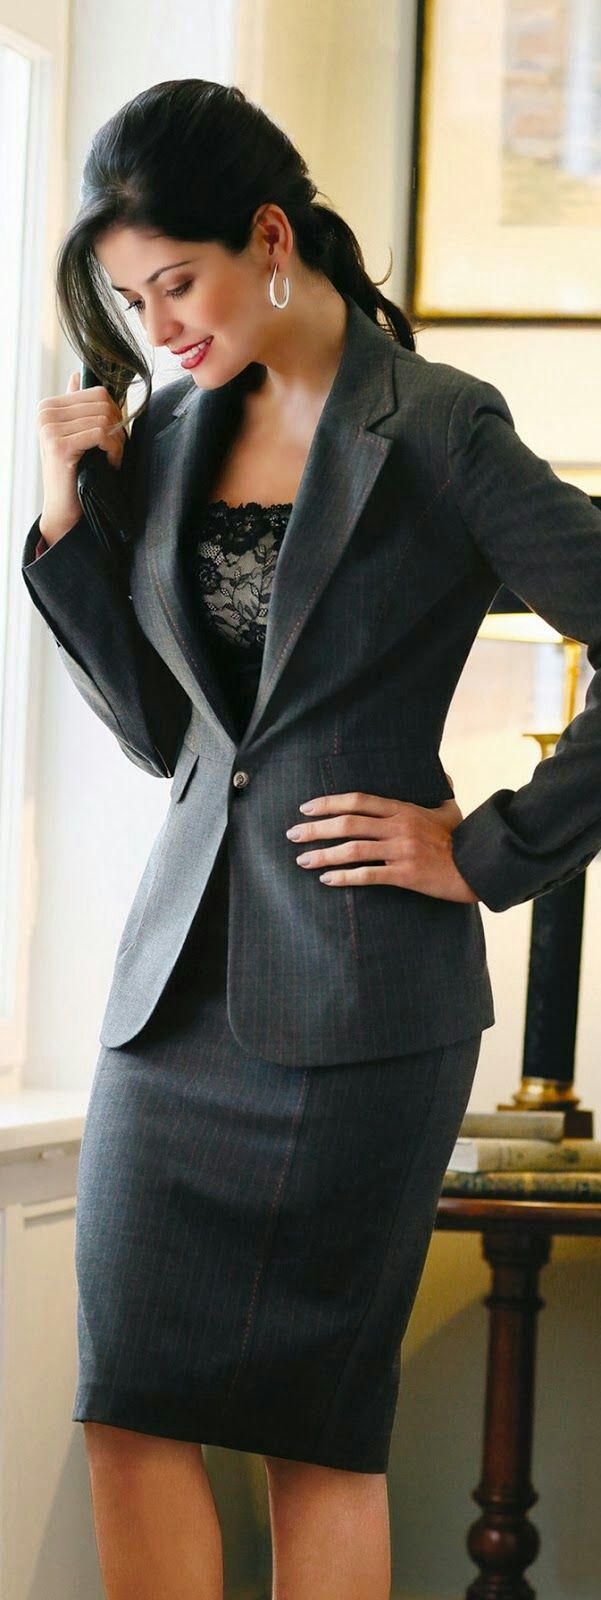 Back to business suits !!!   women fashion outfit clothing style apparel @roressclothes closet ideas